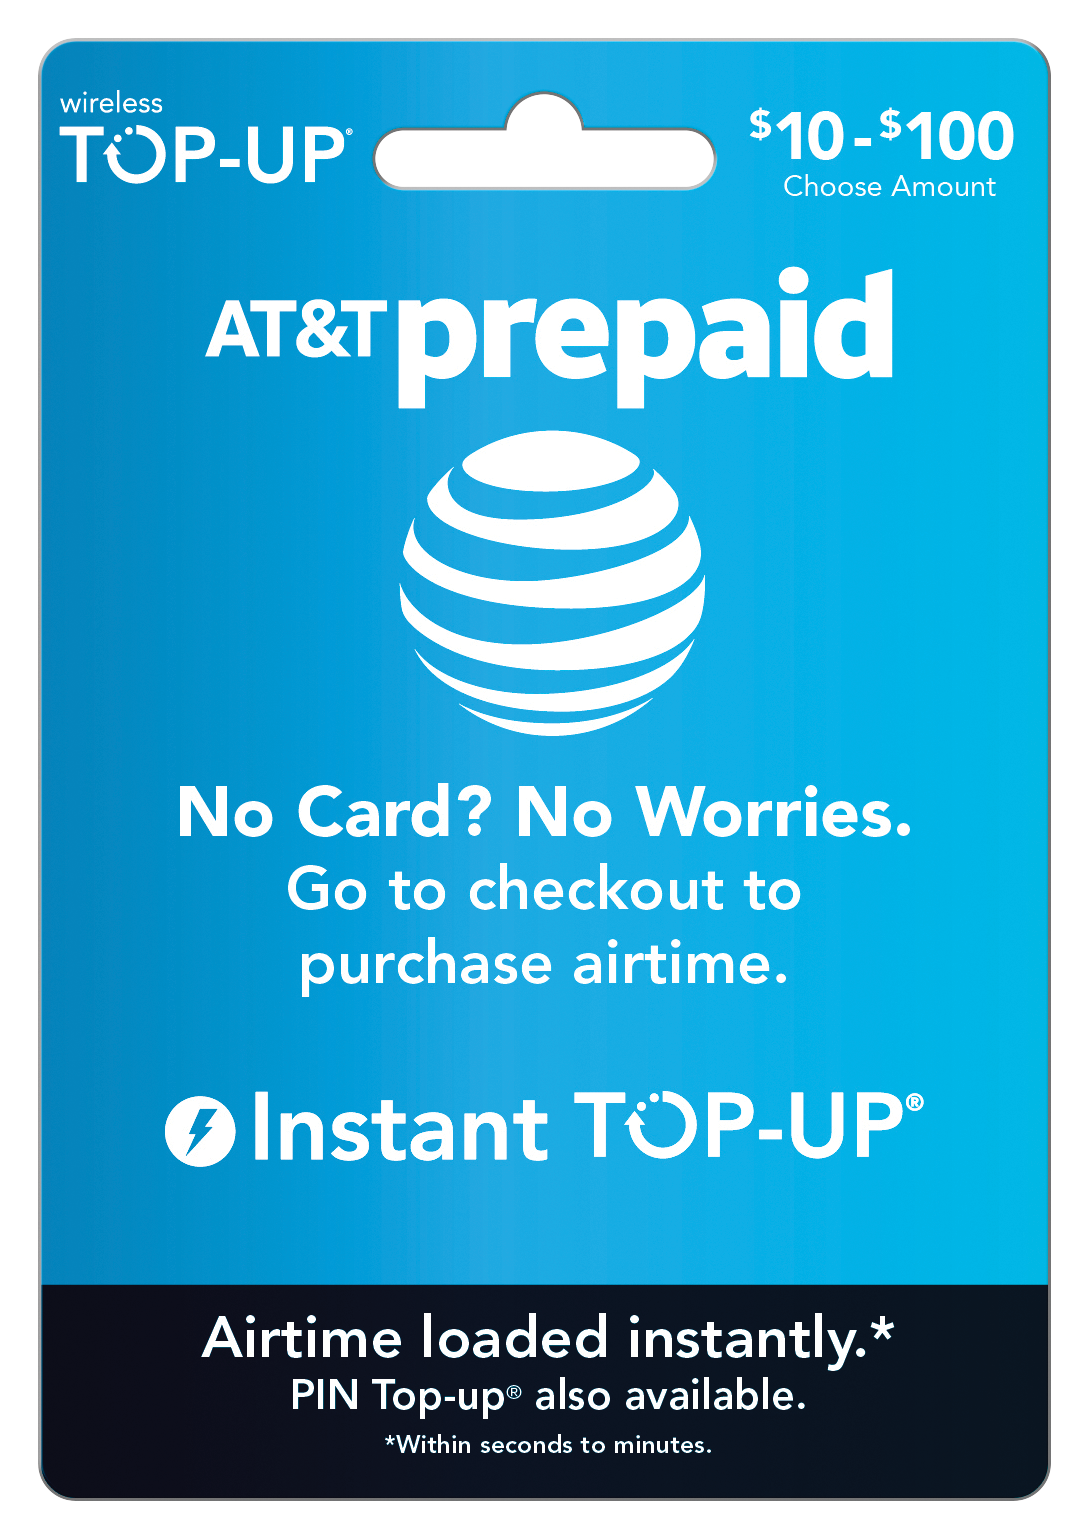 C4273_ATT_Prepaid_Top_Up_Backer_Card_7_Eleven_Open_10_100_062420.png